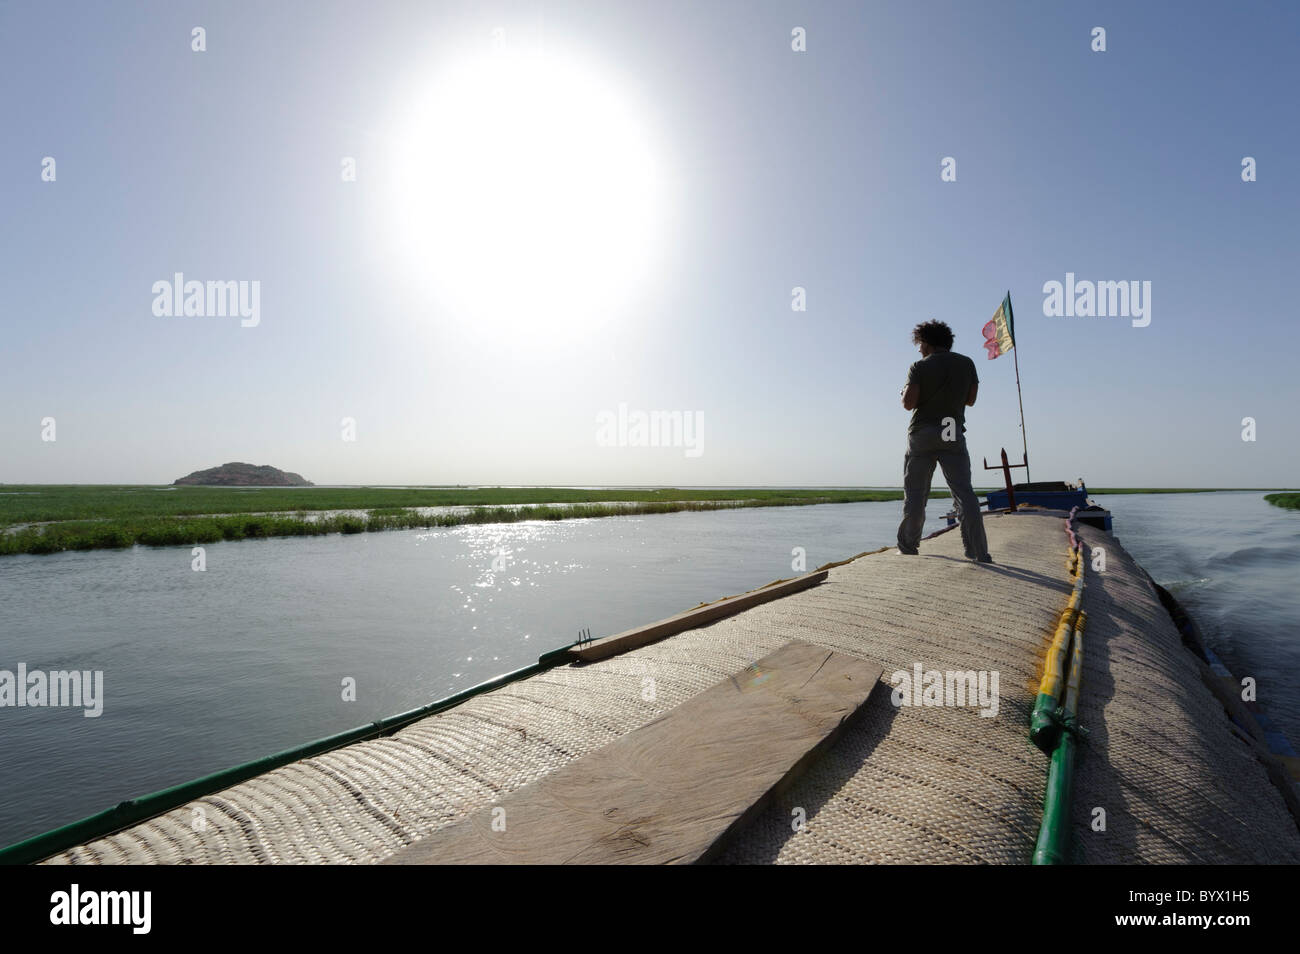 Western tourist standing on the roof of a pinasse during a boattrip on the Niger Inland Delta and Lake Debo. Mali. - Stock Image